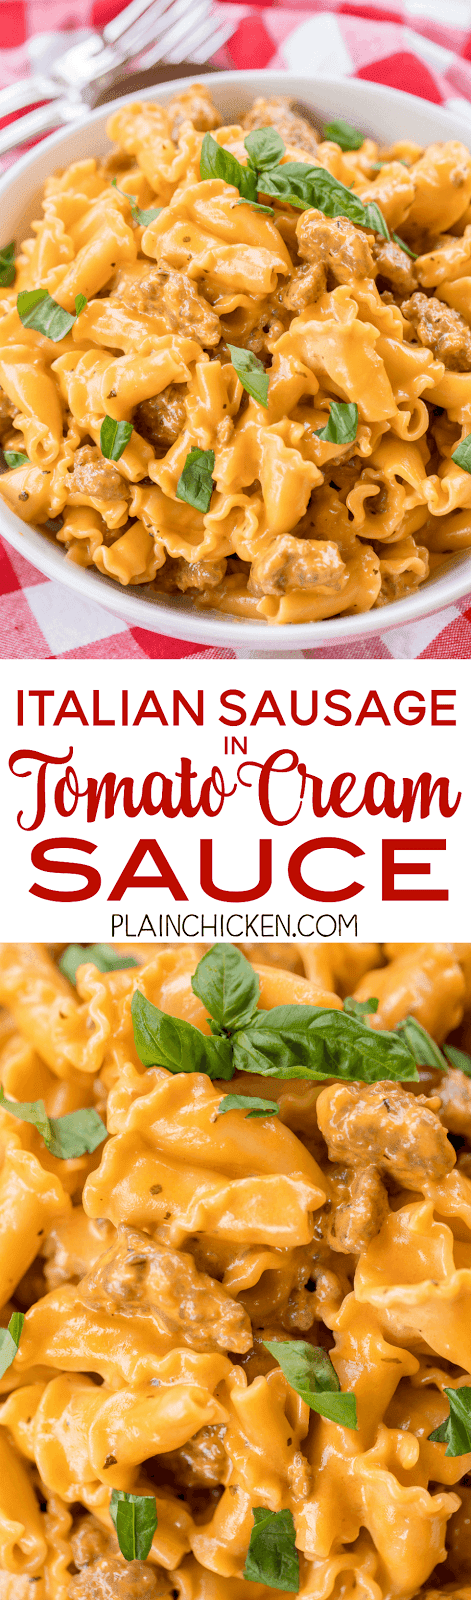 Italian Sausage in Tomato Cream Sauce - ready in 15 minutes! SO simple and tastes AMAZING! Better than any restaurant!! Pasta, Italian Sausage, heavy cream, onion, garlic, oregano, salt, pepper and tomato paste. Can add mushrooms and peppers - get creative! SO good!!!